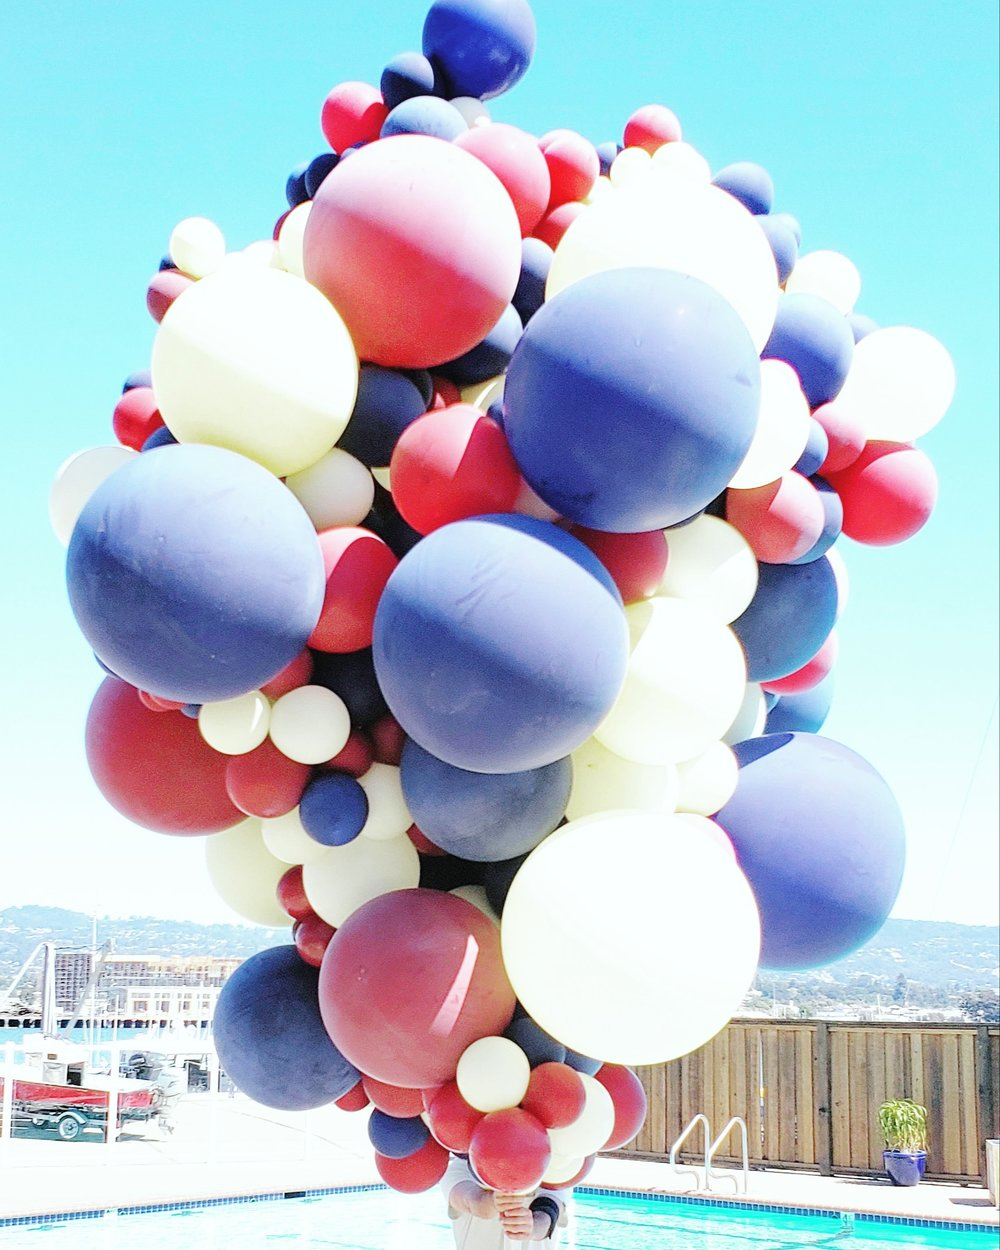 Giant Balloon Cloud Head Explosion Balloon Art - Zim balloons.jpg